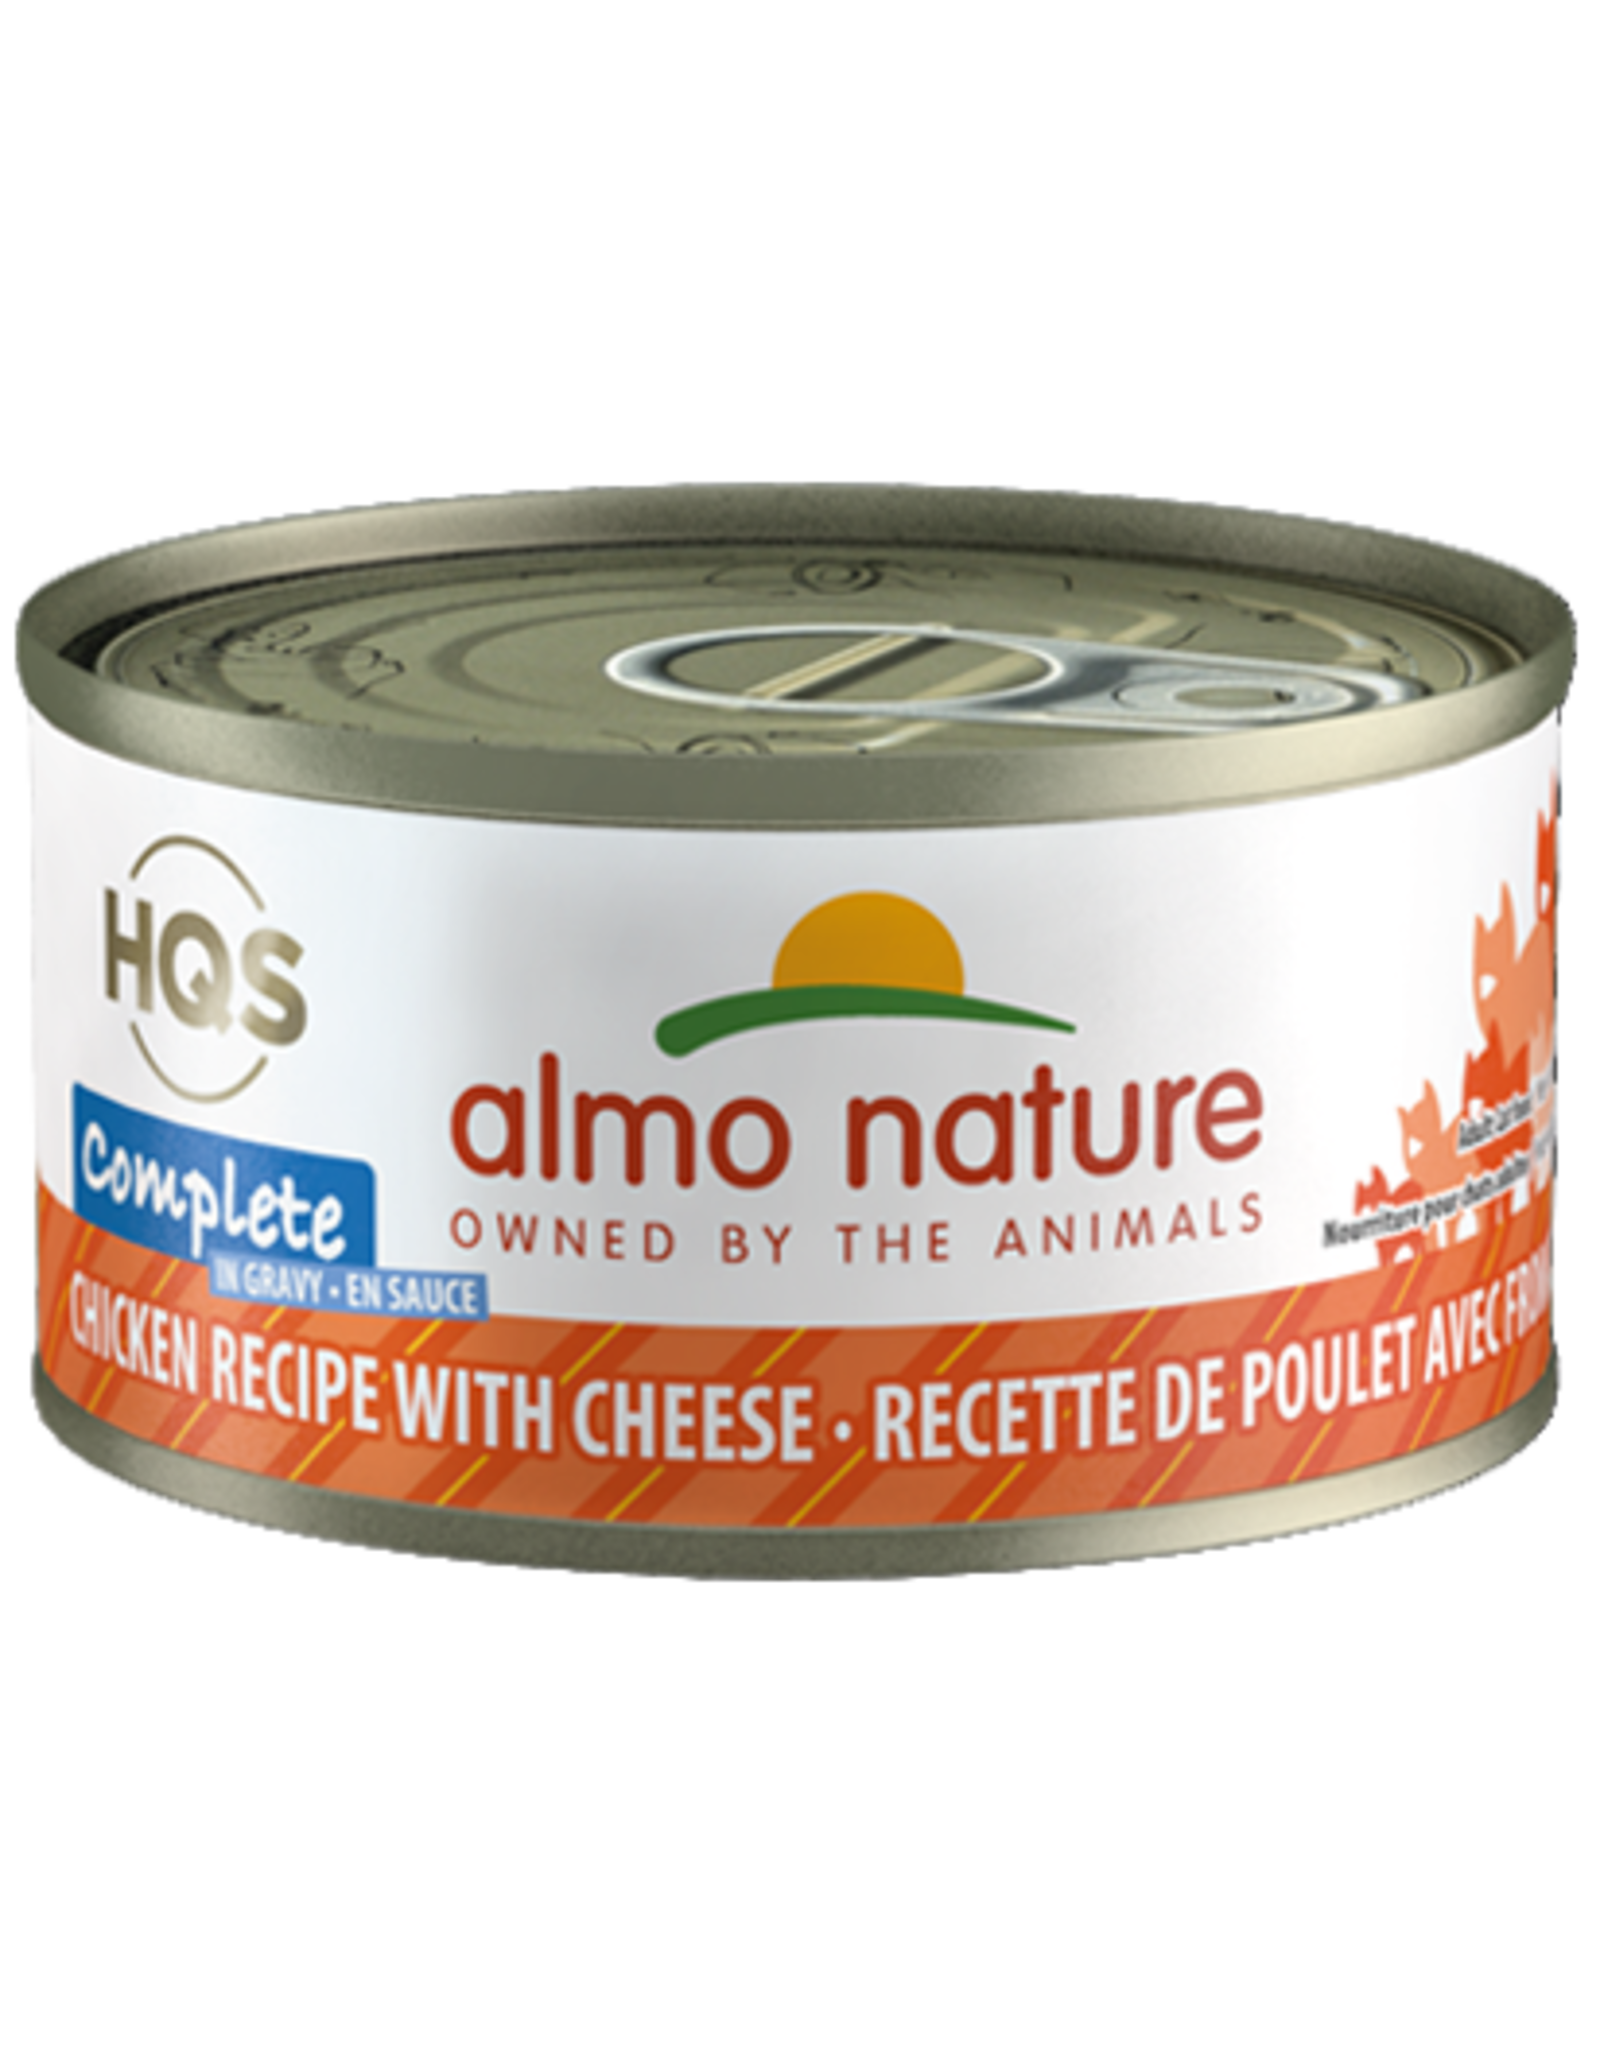 Almo Nature Almo Nature HQS Complete Wet Cat Food Chicken Recipe with Cheese in Gravy 2.47oz Can Grain Free